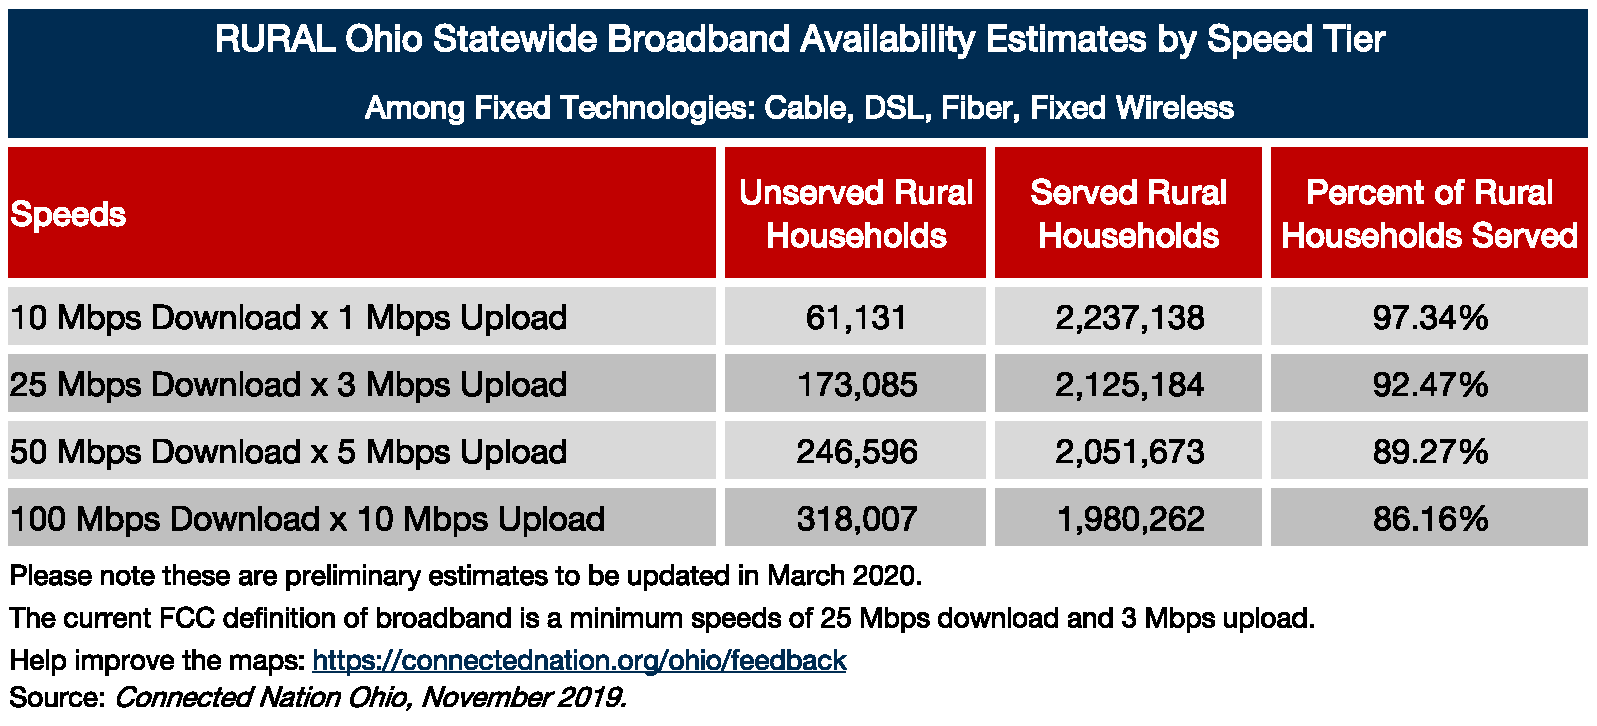 Estimate of Broadband Service Availability in the State of Ohio By Speed Tier Among Fixed Platforms